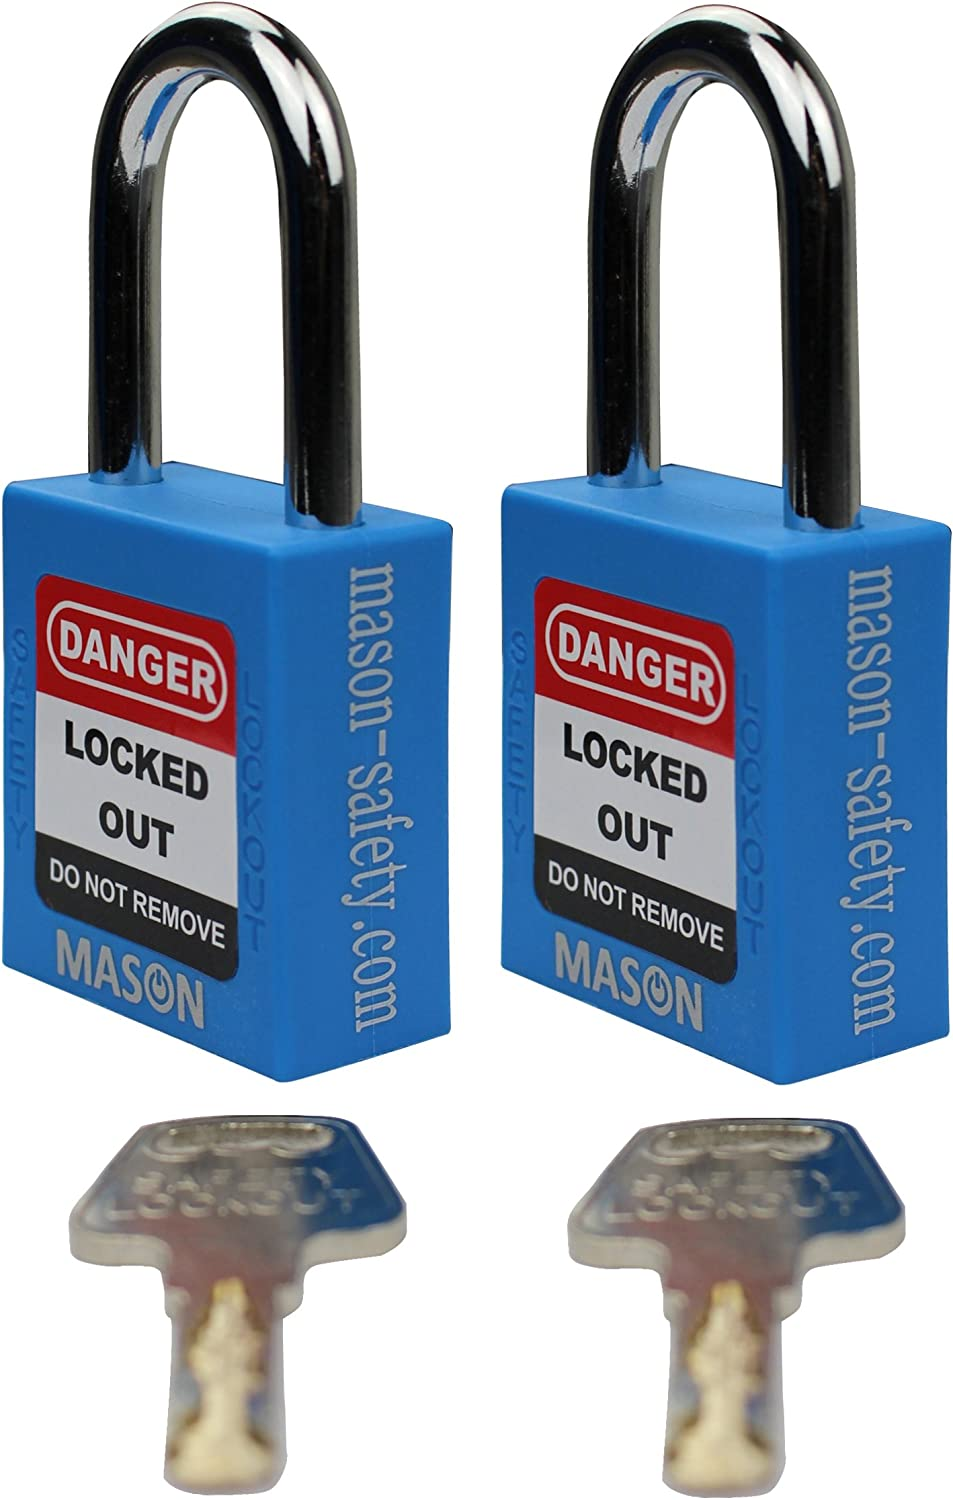 Mason Lockout Tagout 2 Pack KEYED Differently Safety Lockout Padlock, blueee Loto (2 Pack Keyed Differently)